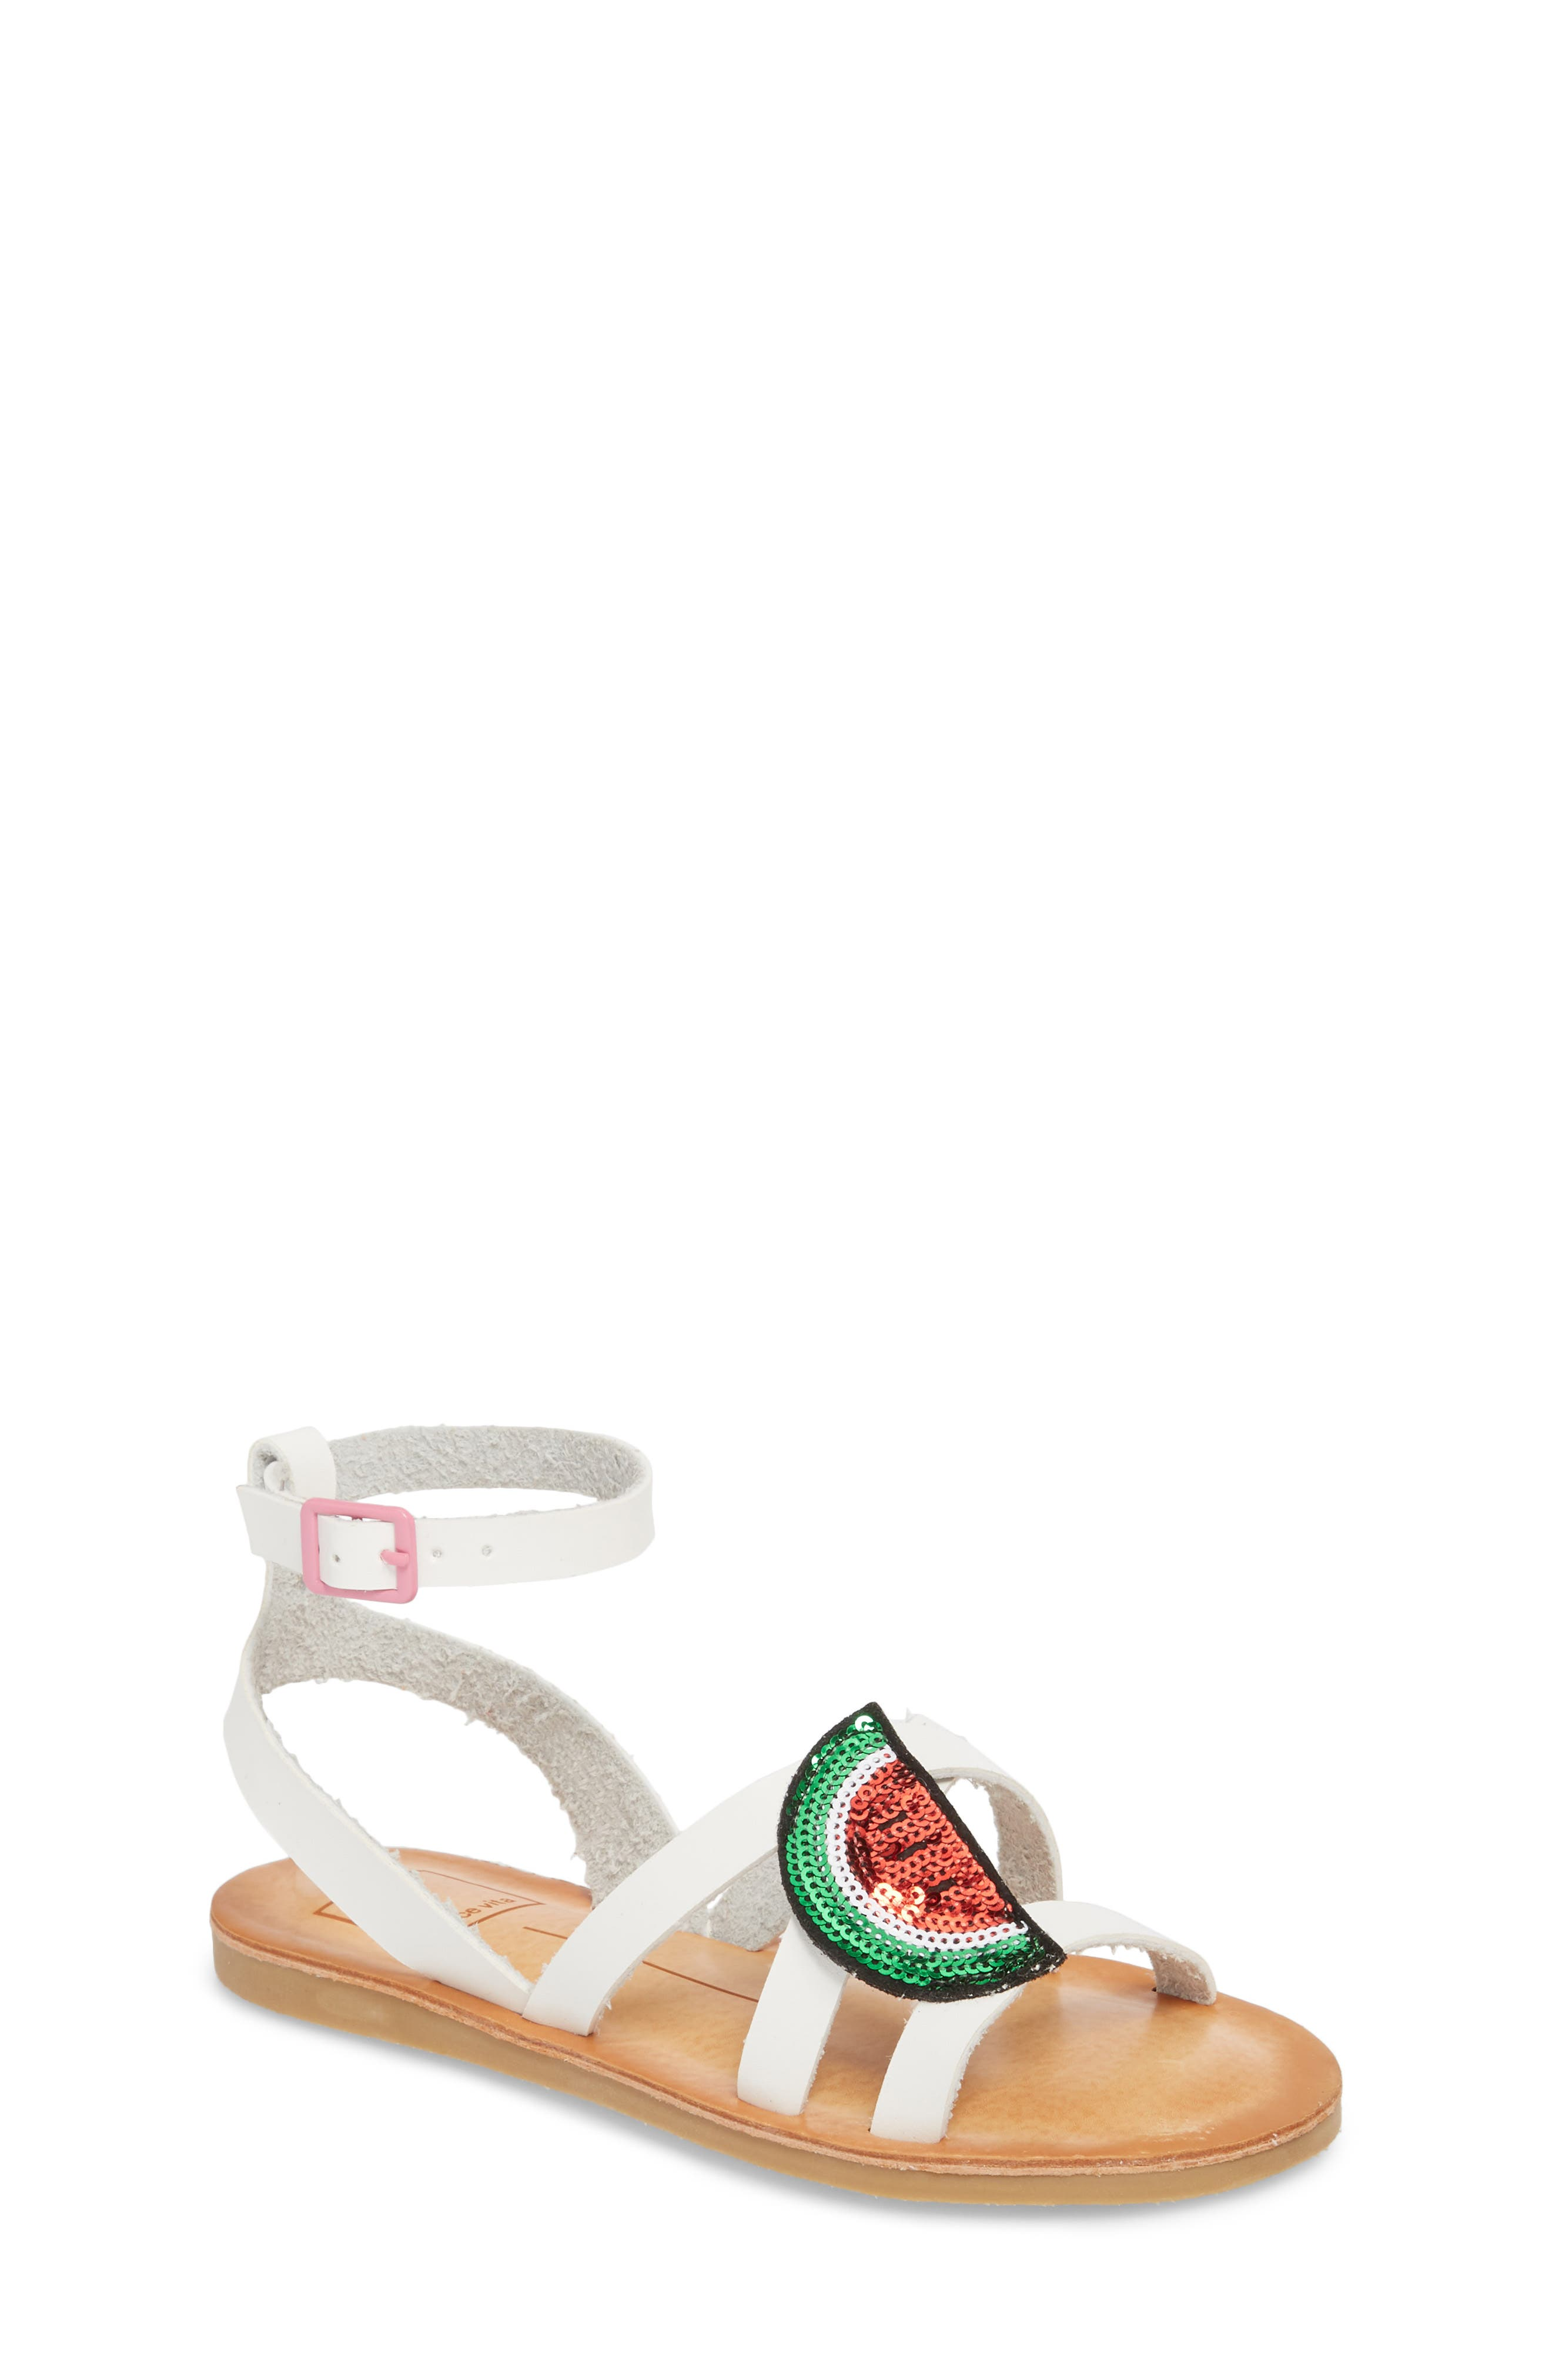 Dolce Vita Jaclin Fruit Sequined Sandal (Toddler, Little Kid & Big Kid)